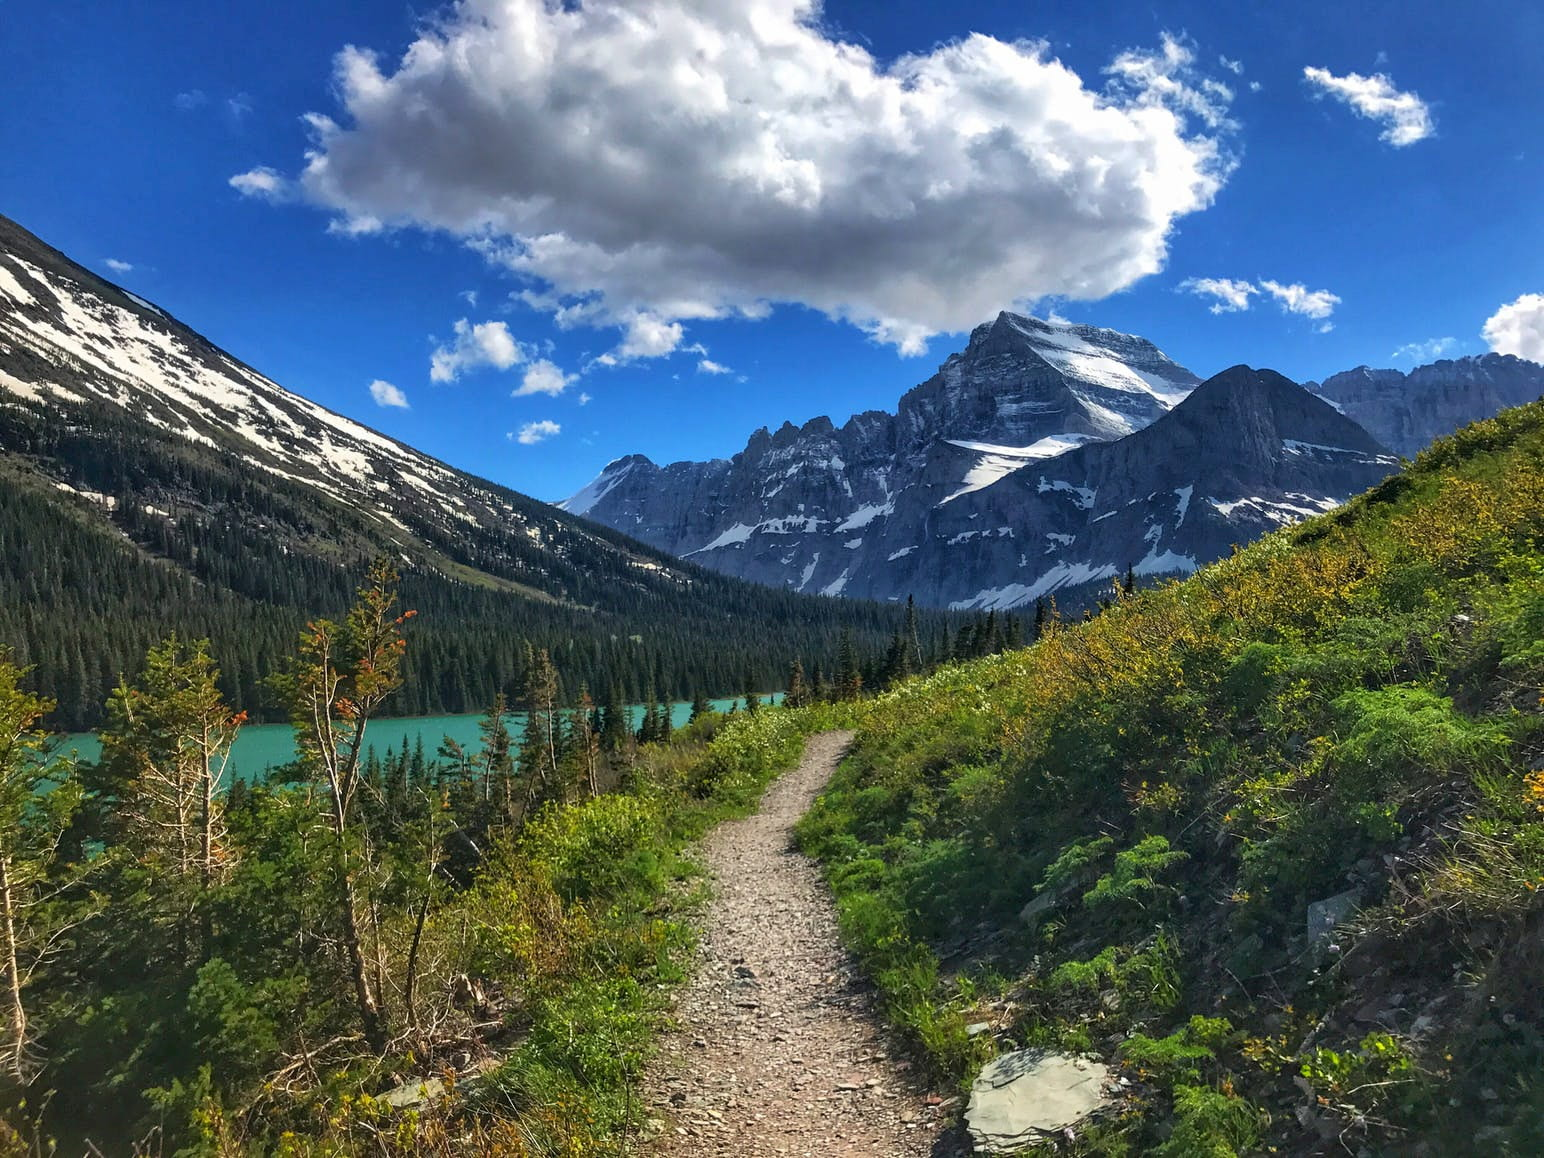 Hiking trail runs into mountainous landscape, beside bright blue glacial lake.